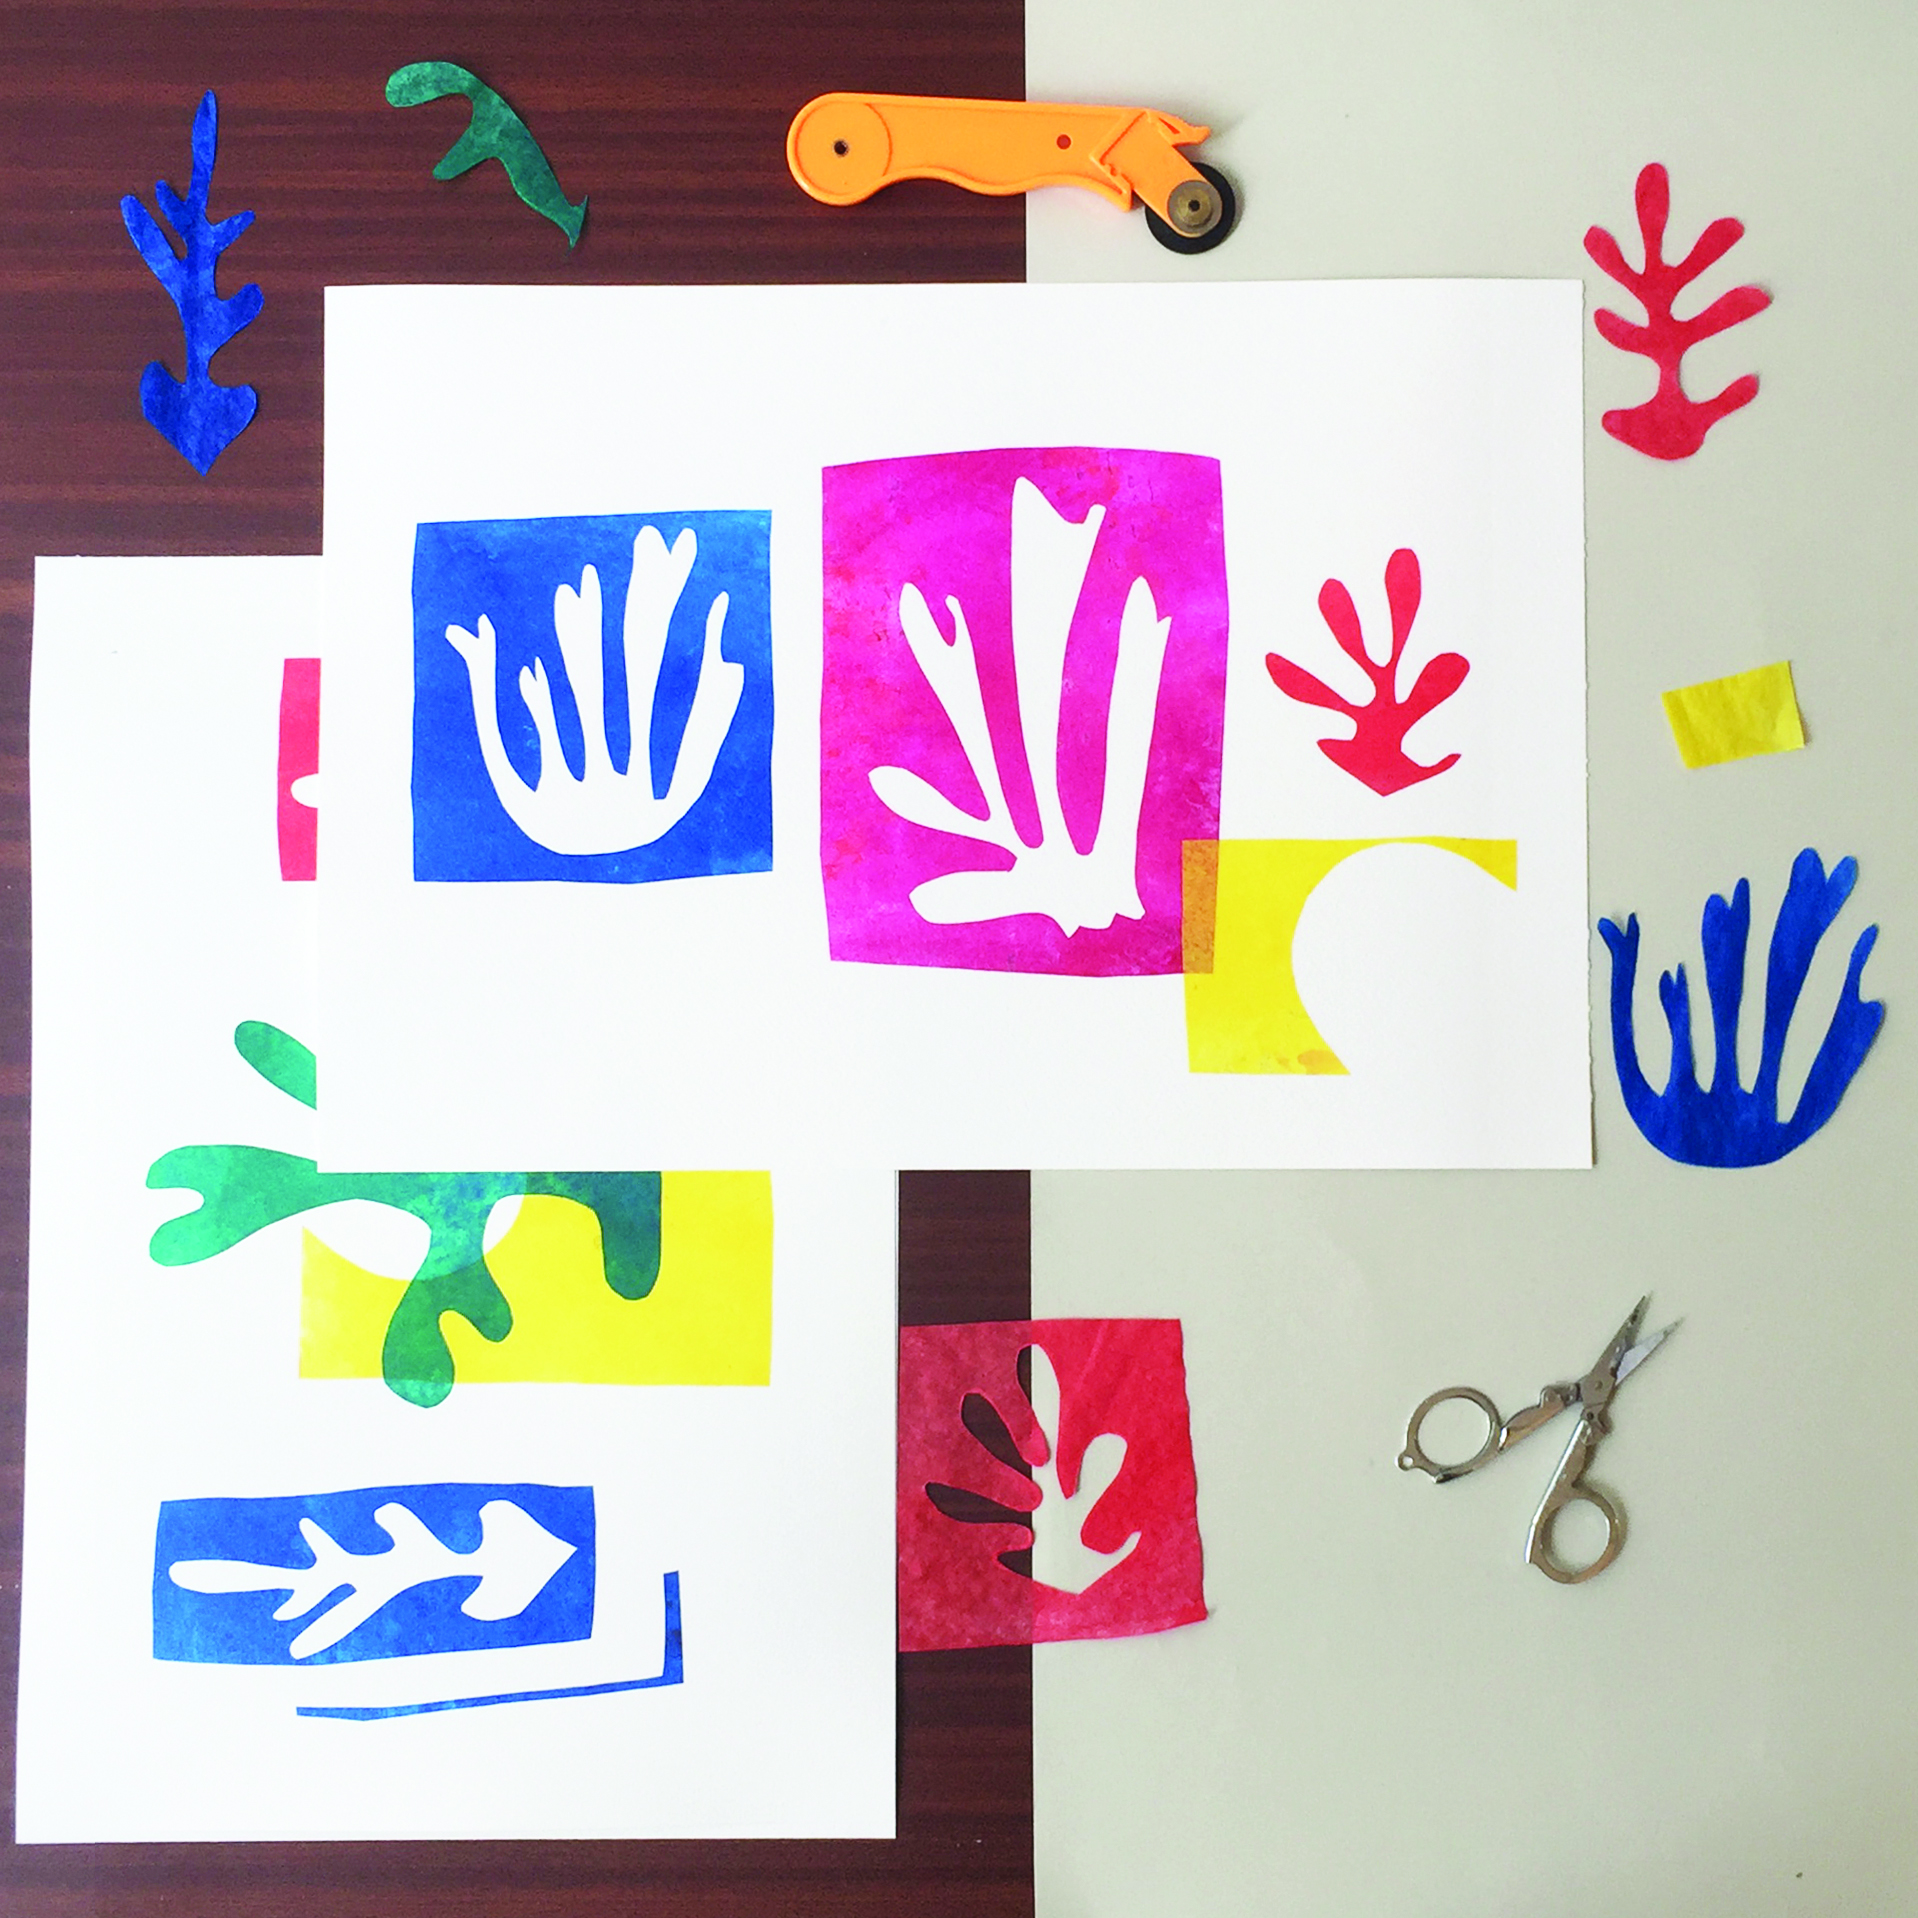 Express Collage Workshops - 17.00 - 18.00Empress Mews Studios, 6 Empress Mews, Off Kenbury Street, SEJoin mixed media artist Gabriela Szulman in her studio for an express collage workshop inspired by Matisse's cut-outs. You will learn a very simple technique for which no experience or artistic ability is necessary. All materials are provided£20 single, £35 double - BOOK HERE